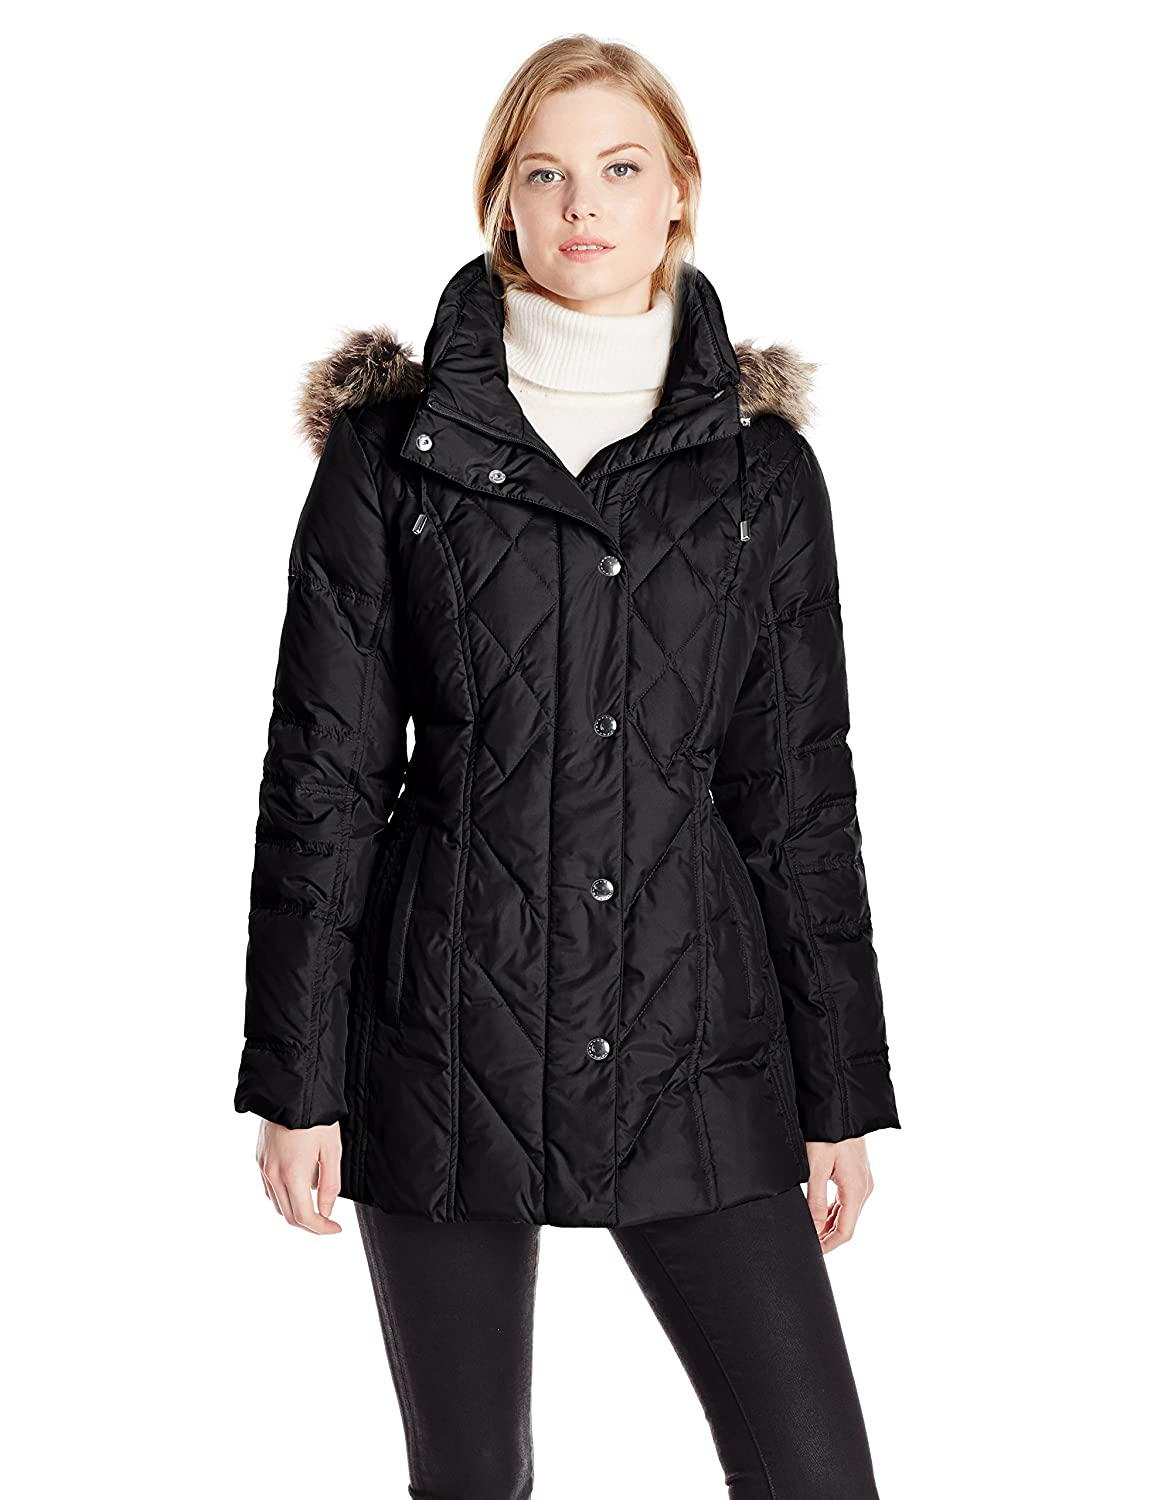 Shop black quilted jacket at Neiman Marcus, where you will find free shipping on the latest in fashion from top designers.